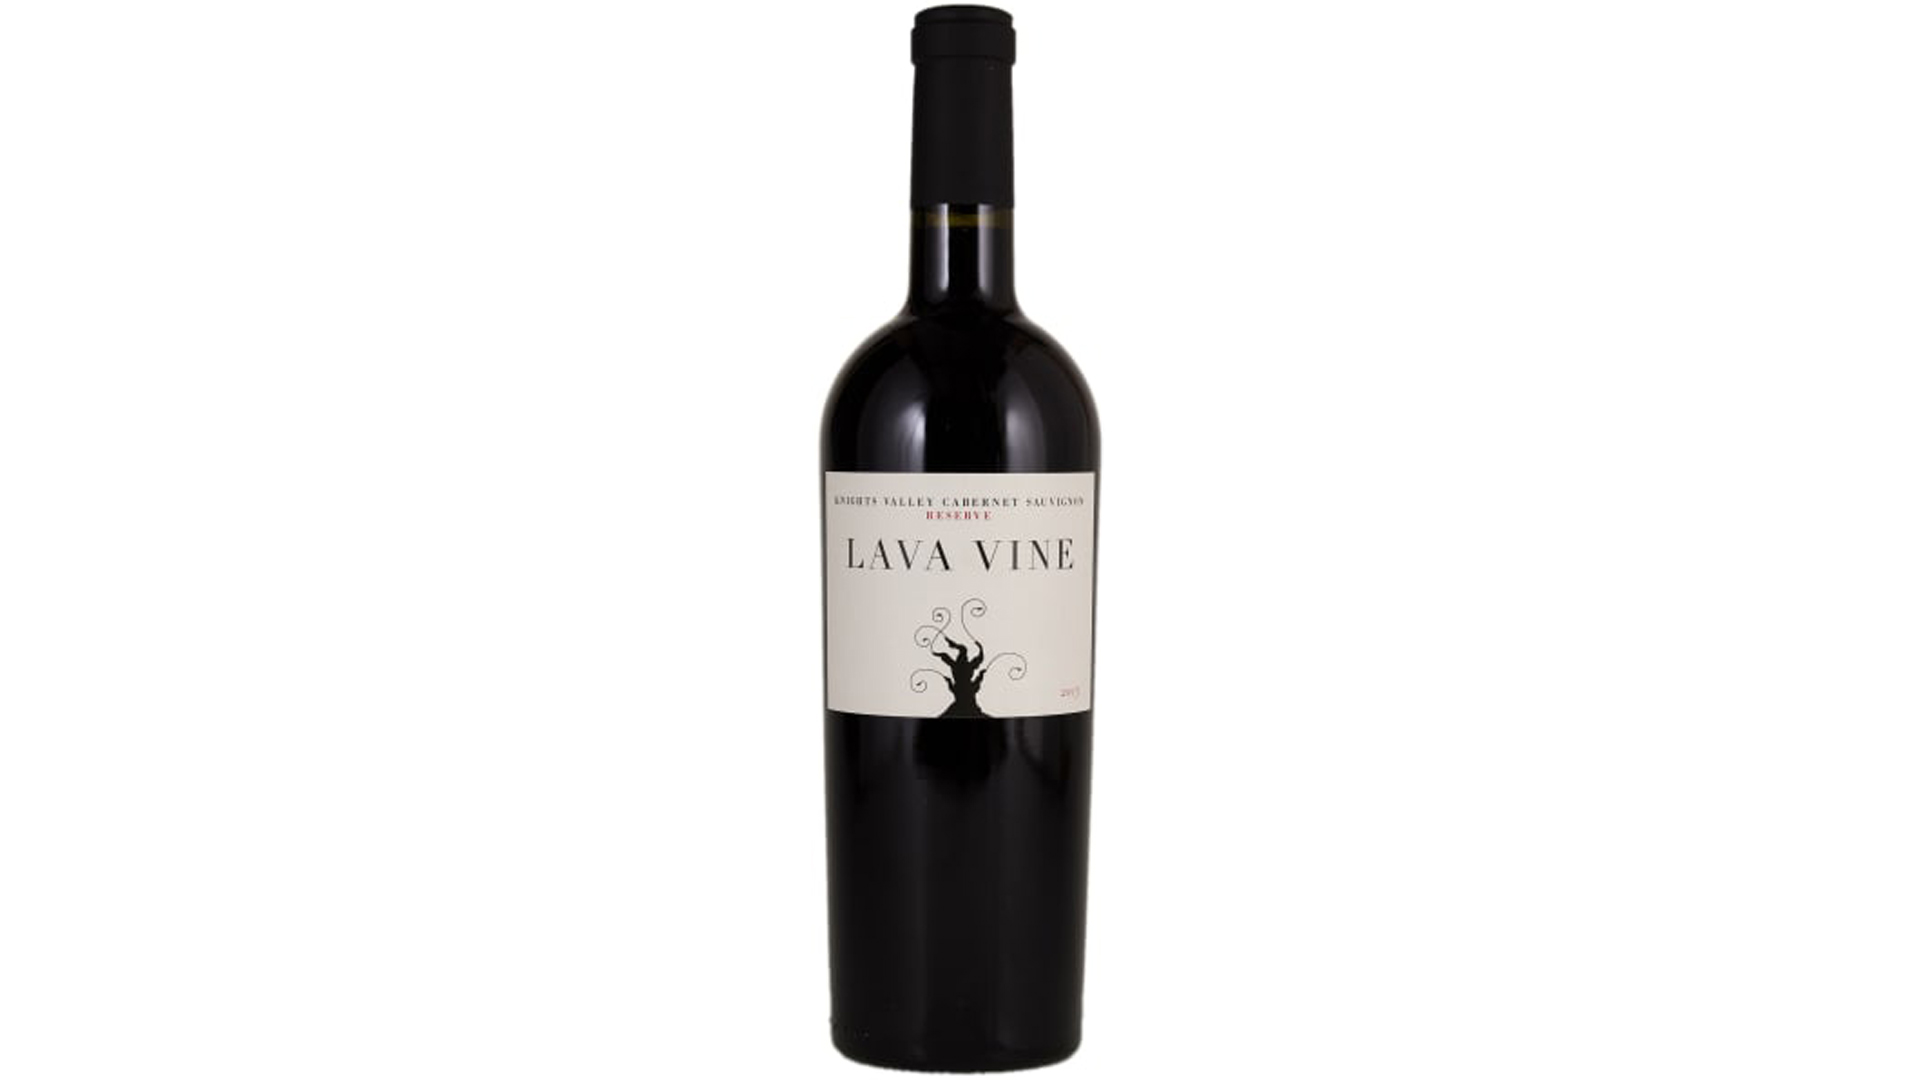 Delightful Wines To Your Dad On Father's Day 2019 - Lava Vine